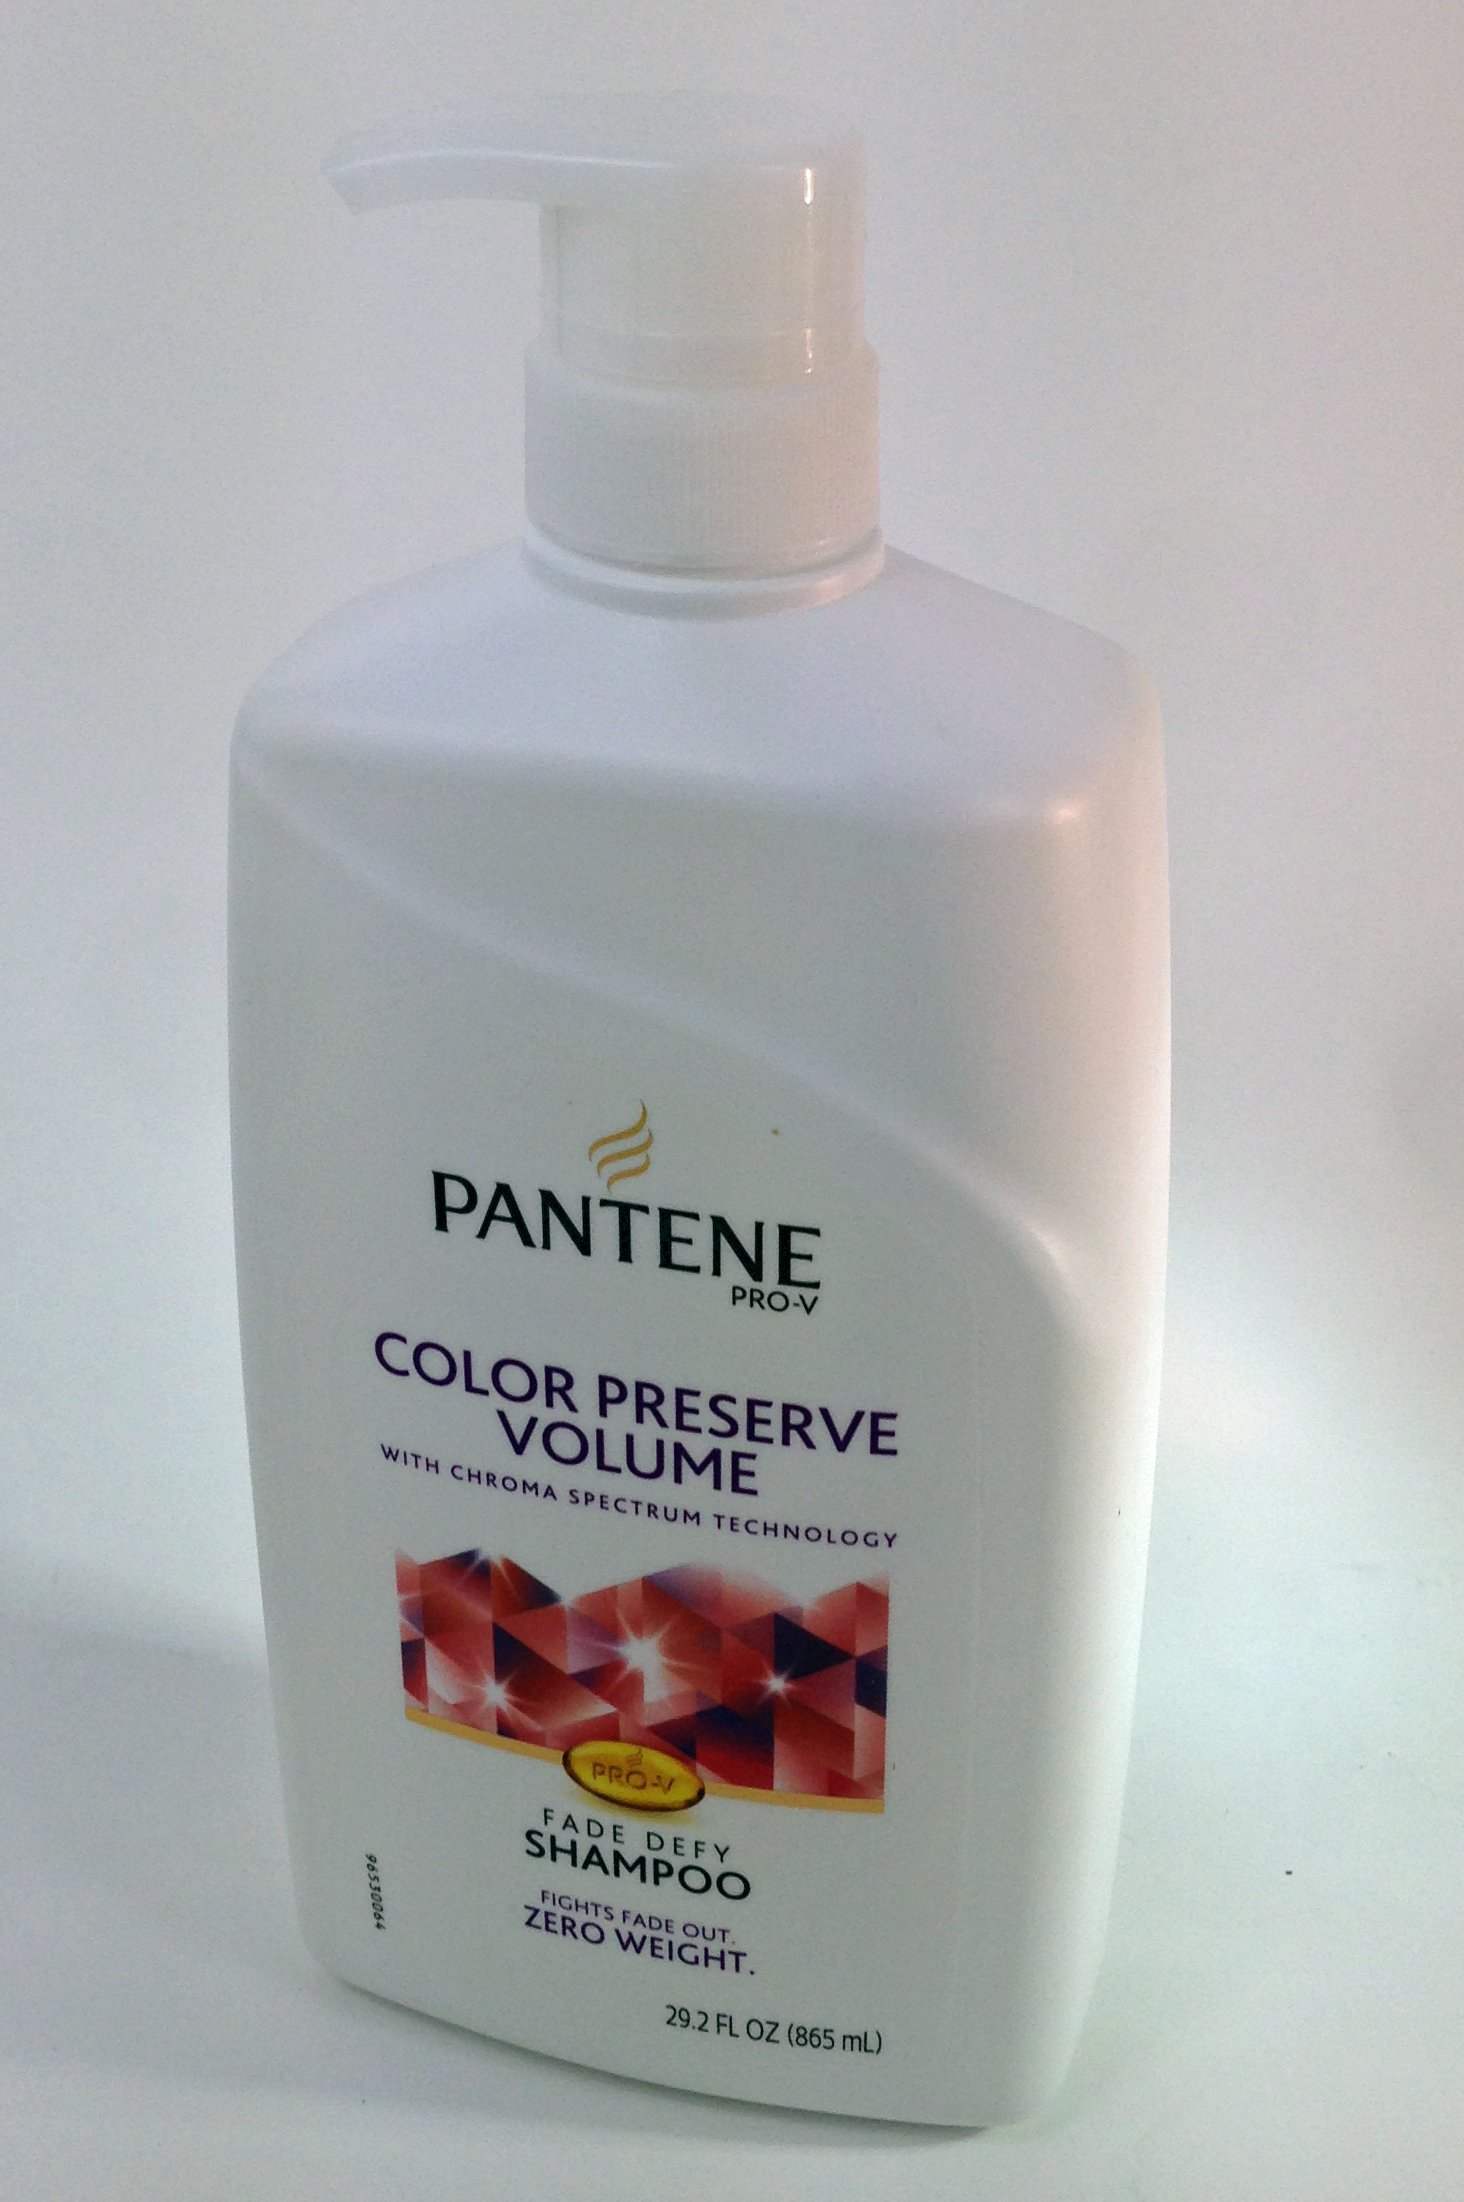 Pantene Pro V Colour Preserve Volume Shampoo - 29.2 oz by Pantene